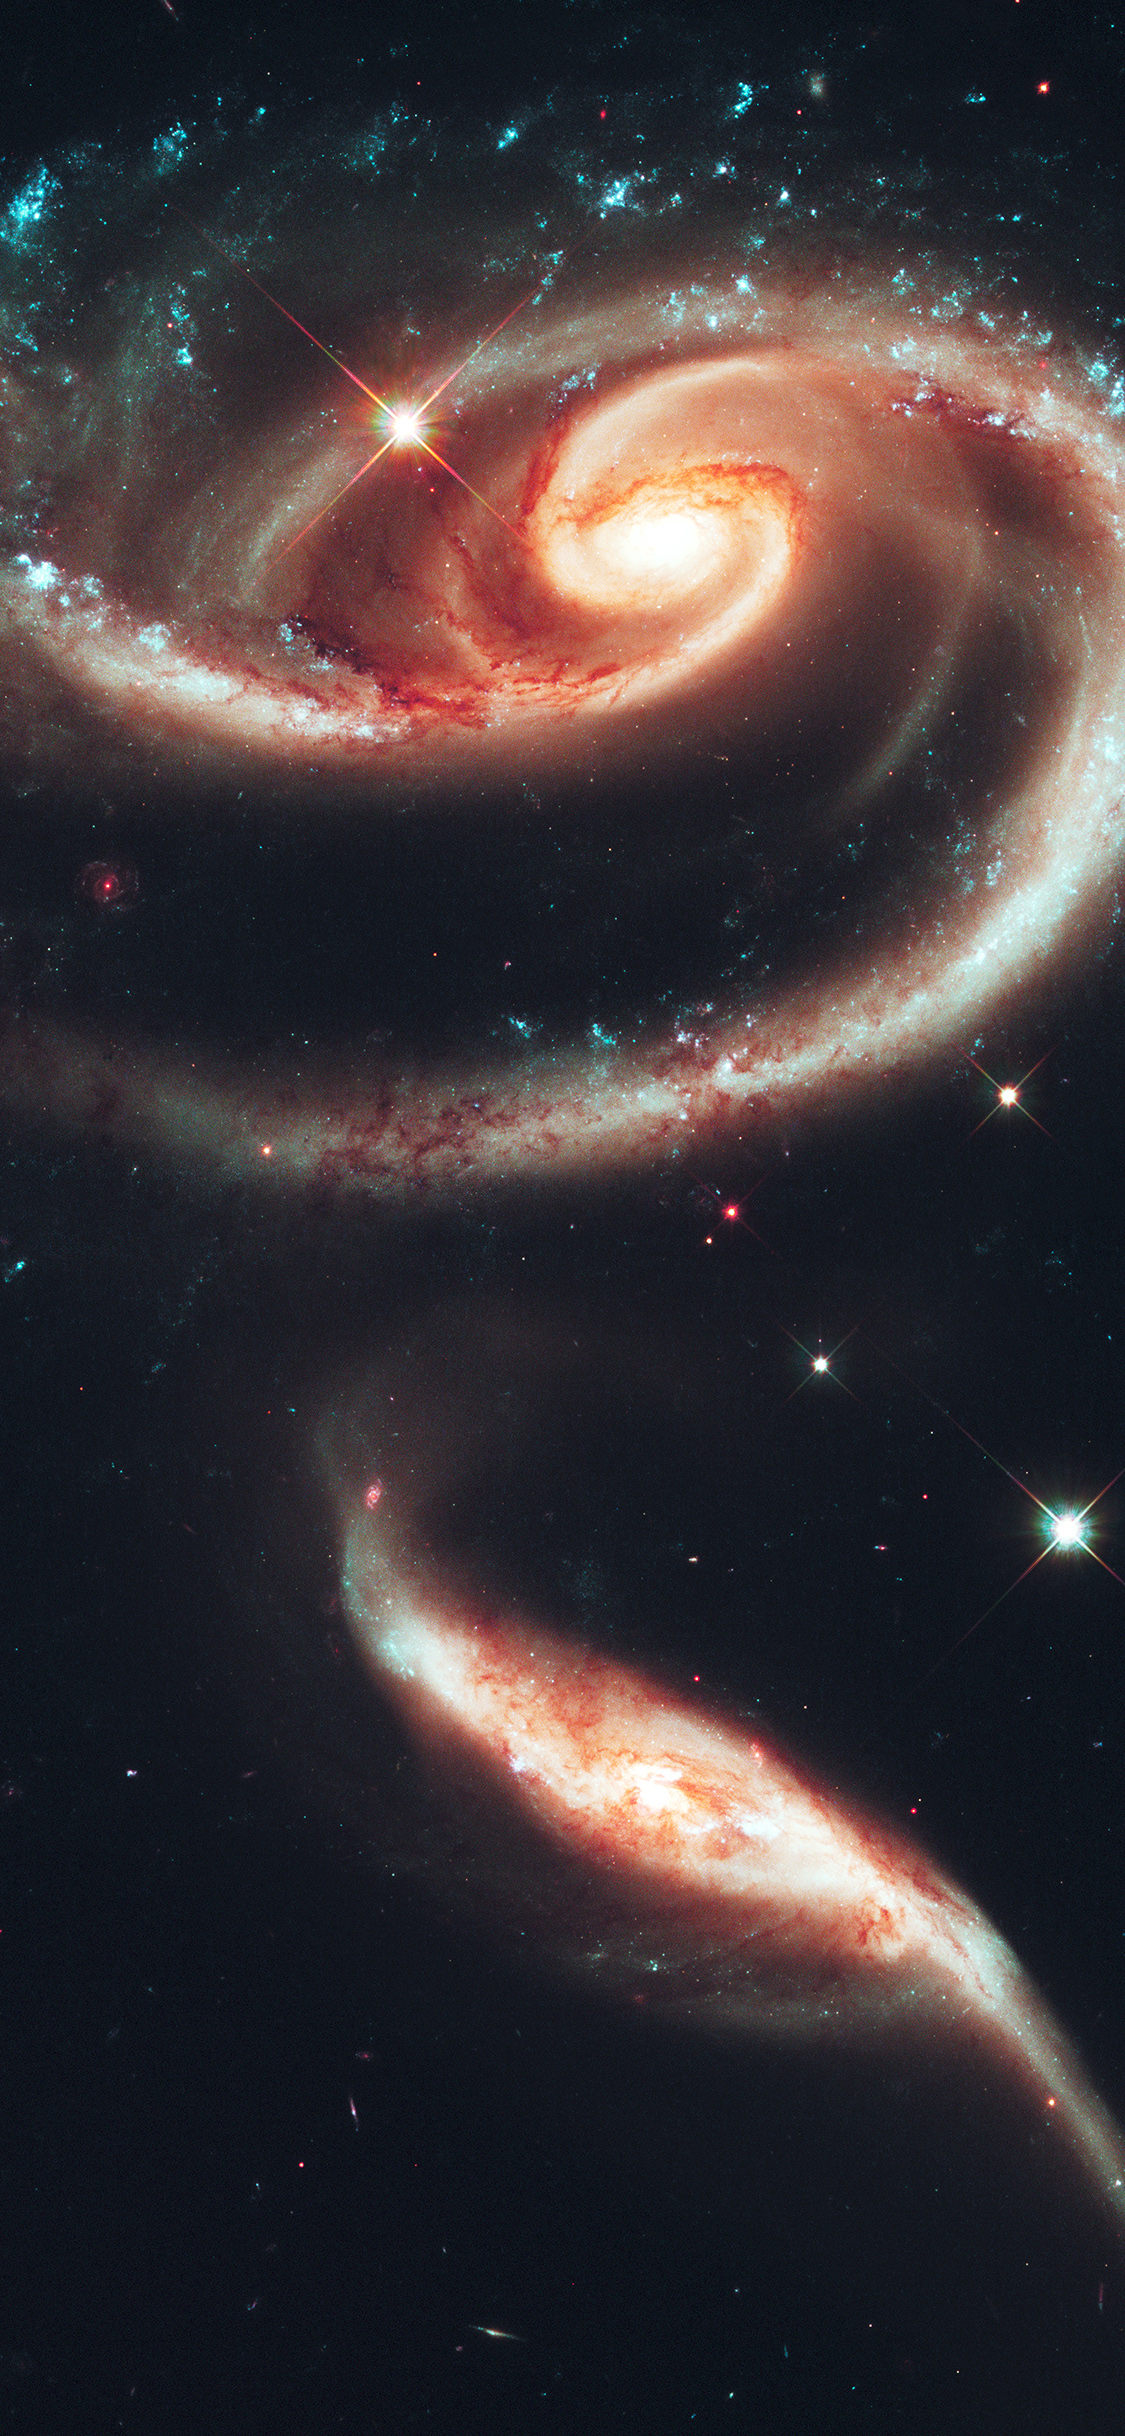 au90-galaxy-universe-space-dark-illustration-art-red-wallpaper